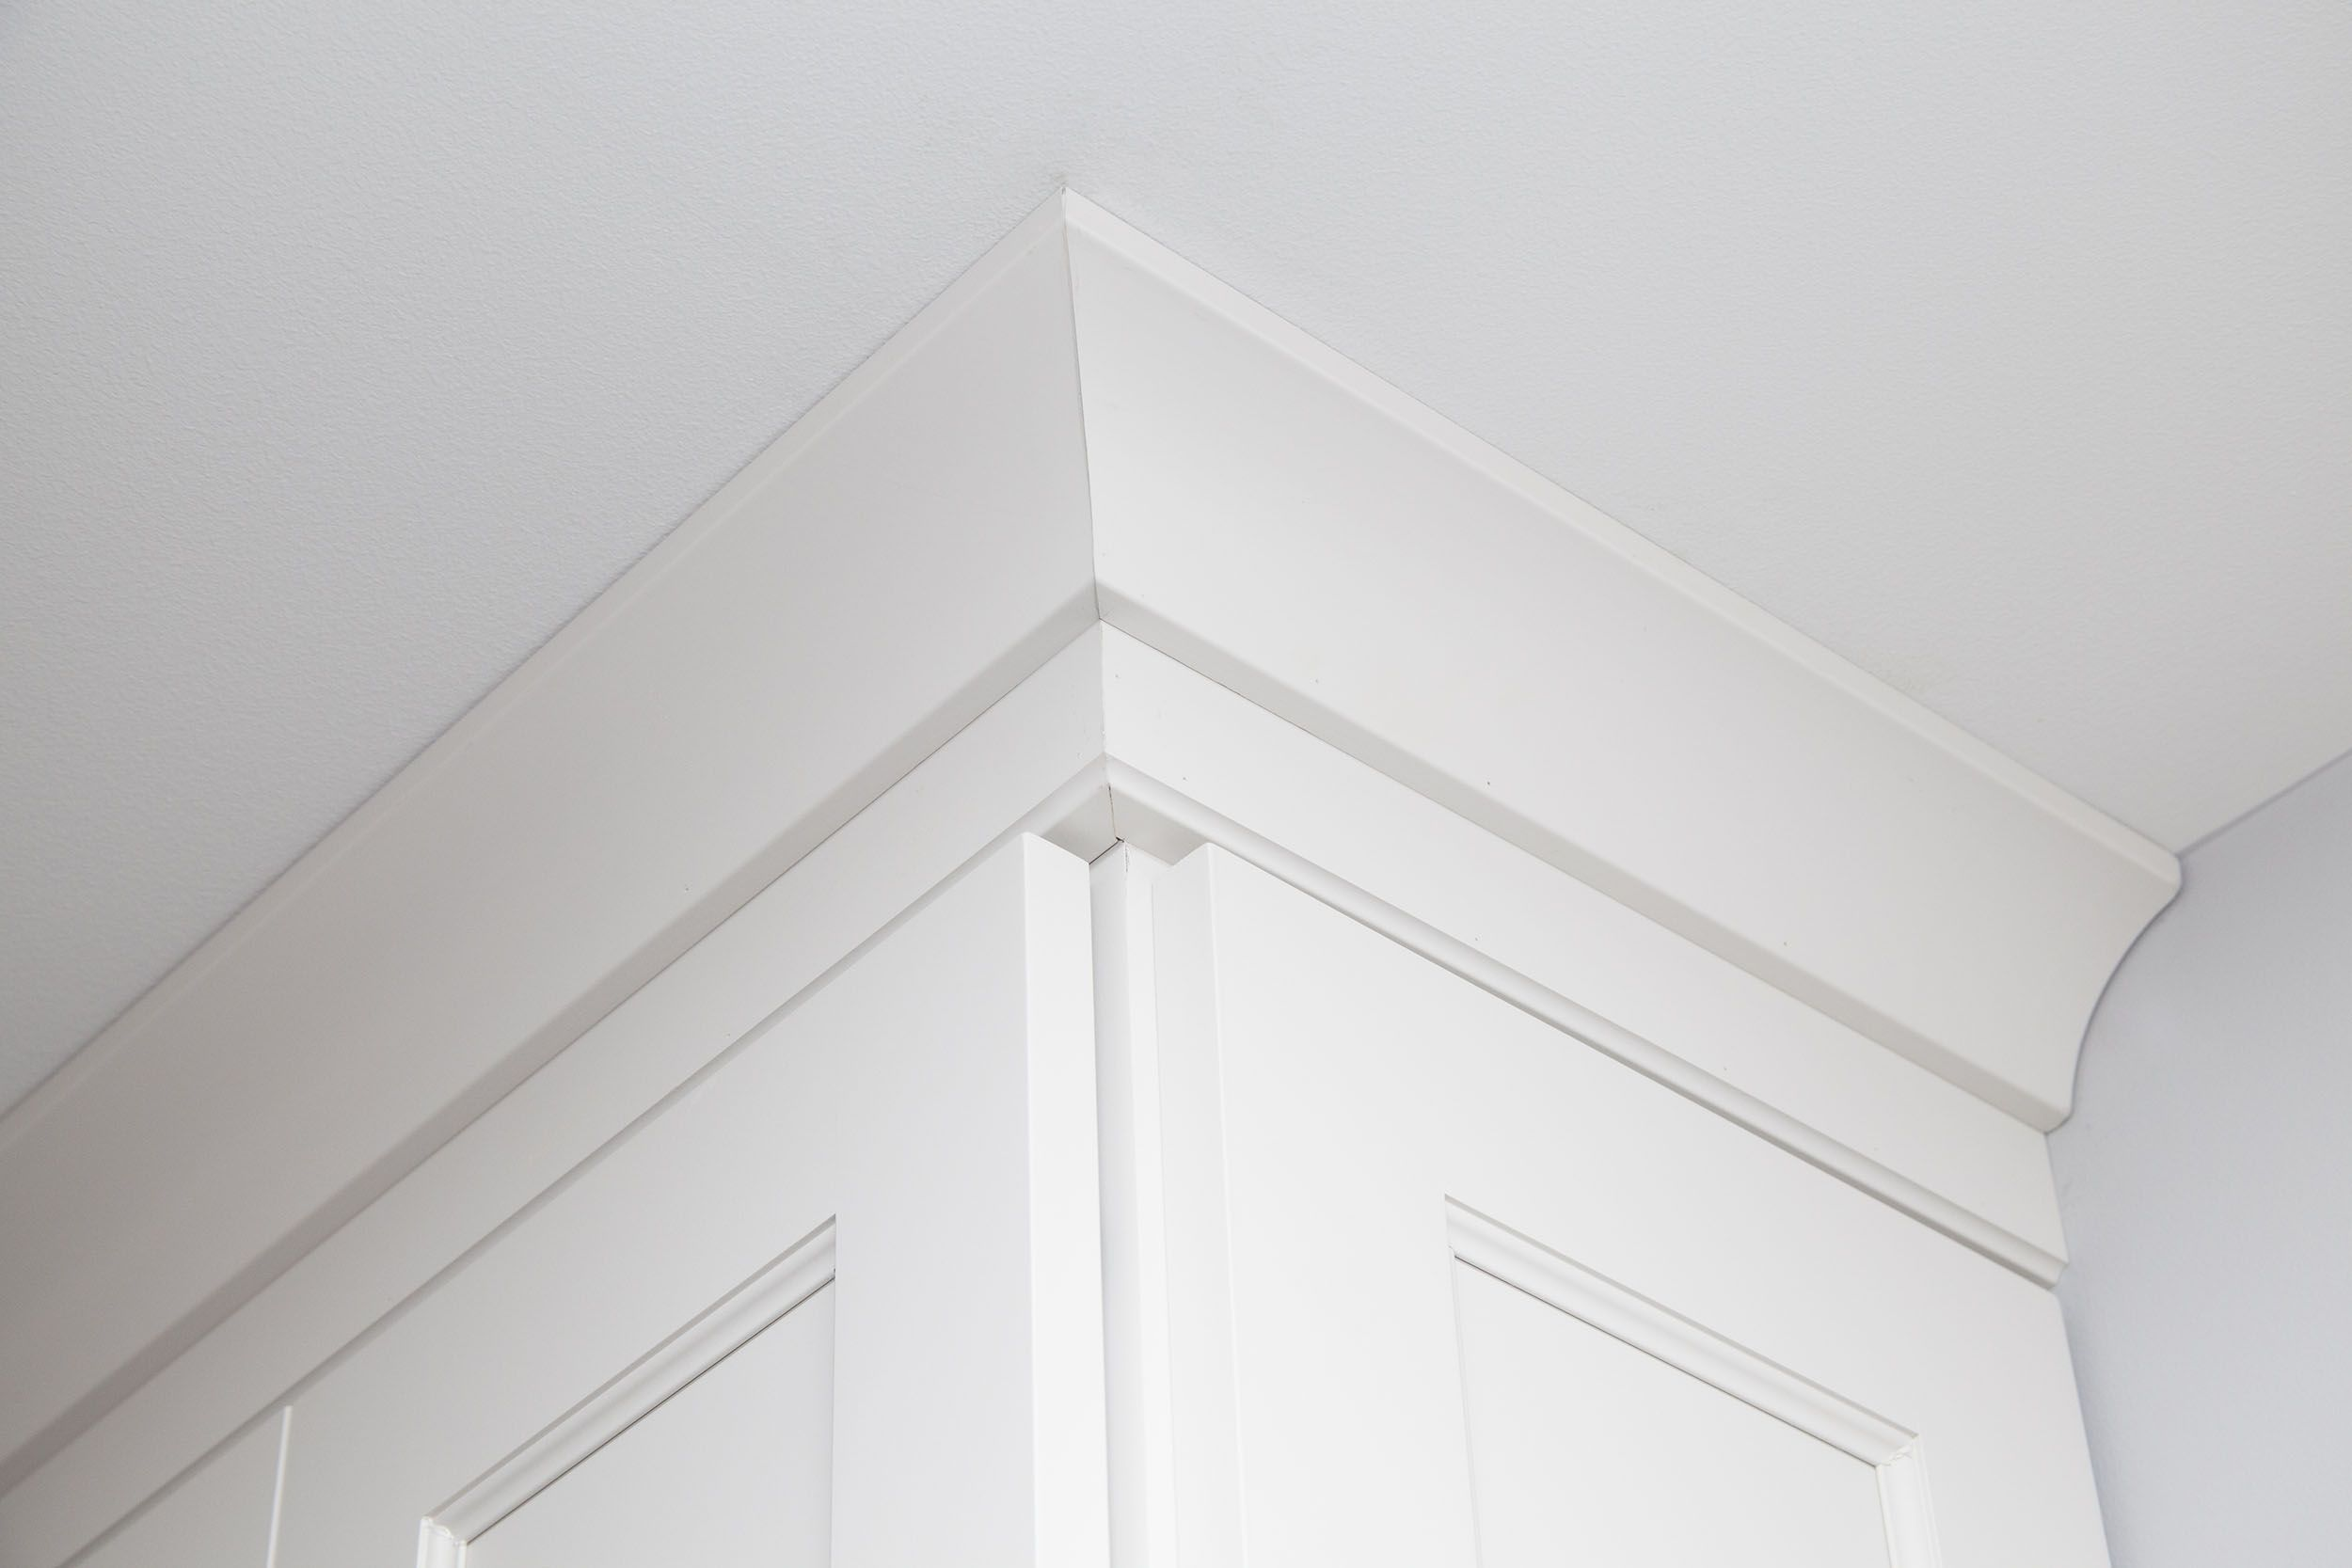 This Is A Crown Molding Detail We Used A Simple Crown Molding With A Small Detail Crown Molding Kitchen Kitchen Cabinet Crown Molding Kitchen Cabinet Molding